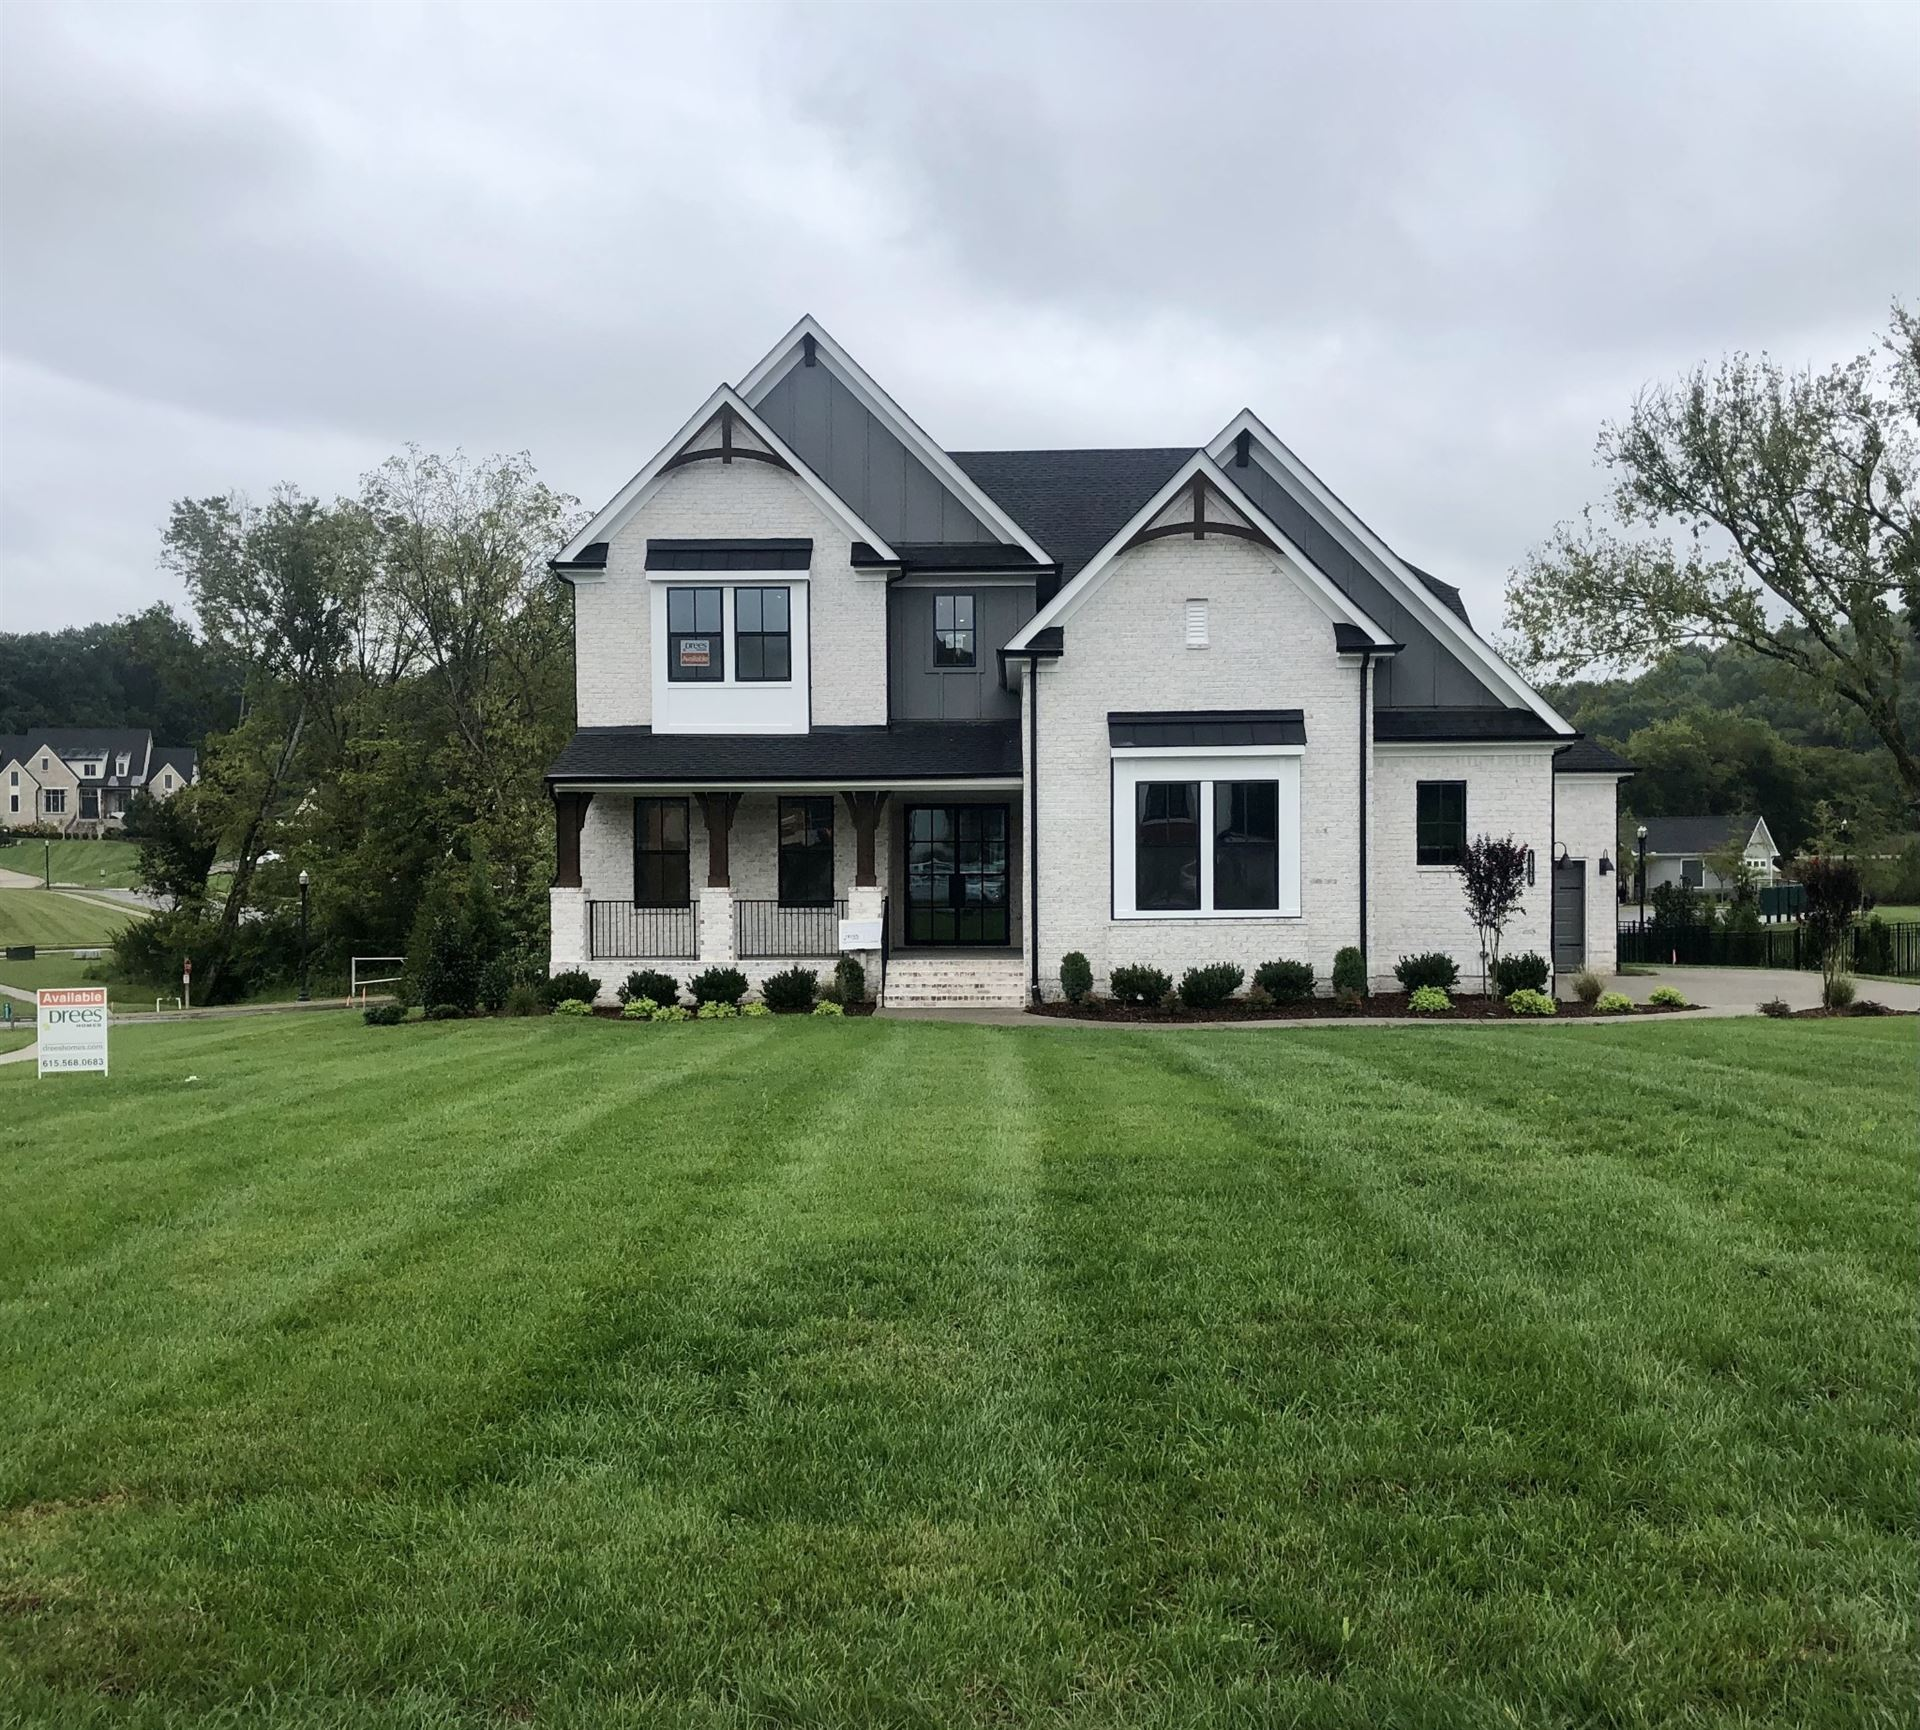 Photo of 1920 Campfire Court, Brentwood, TN 37027 (MLS # 2287211)